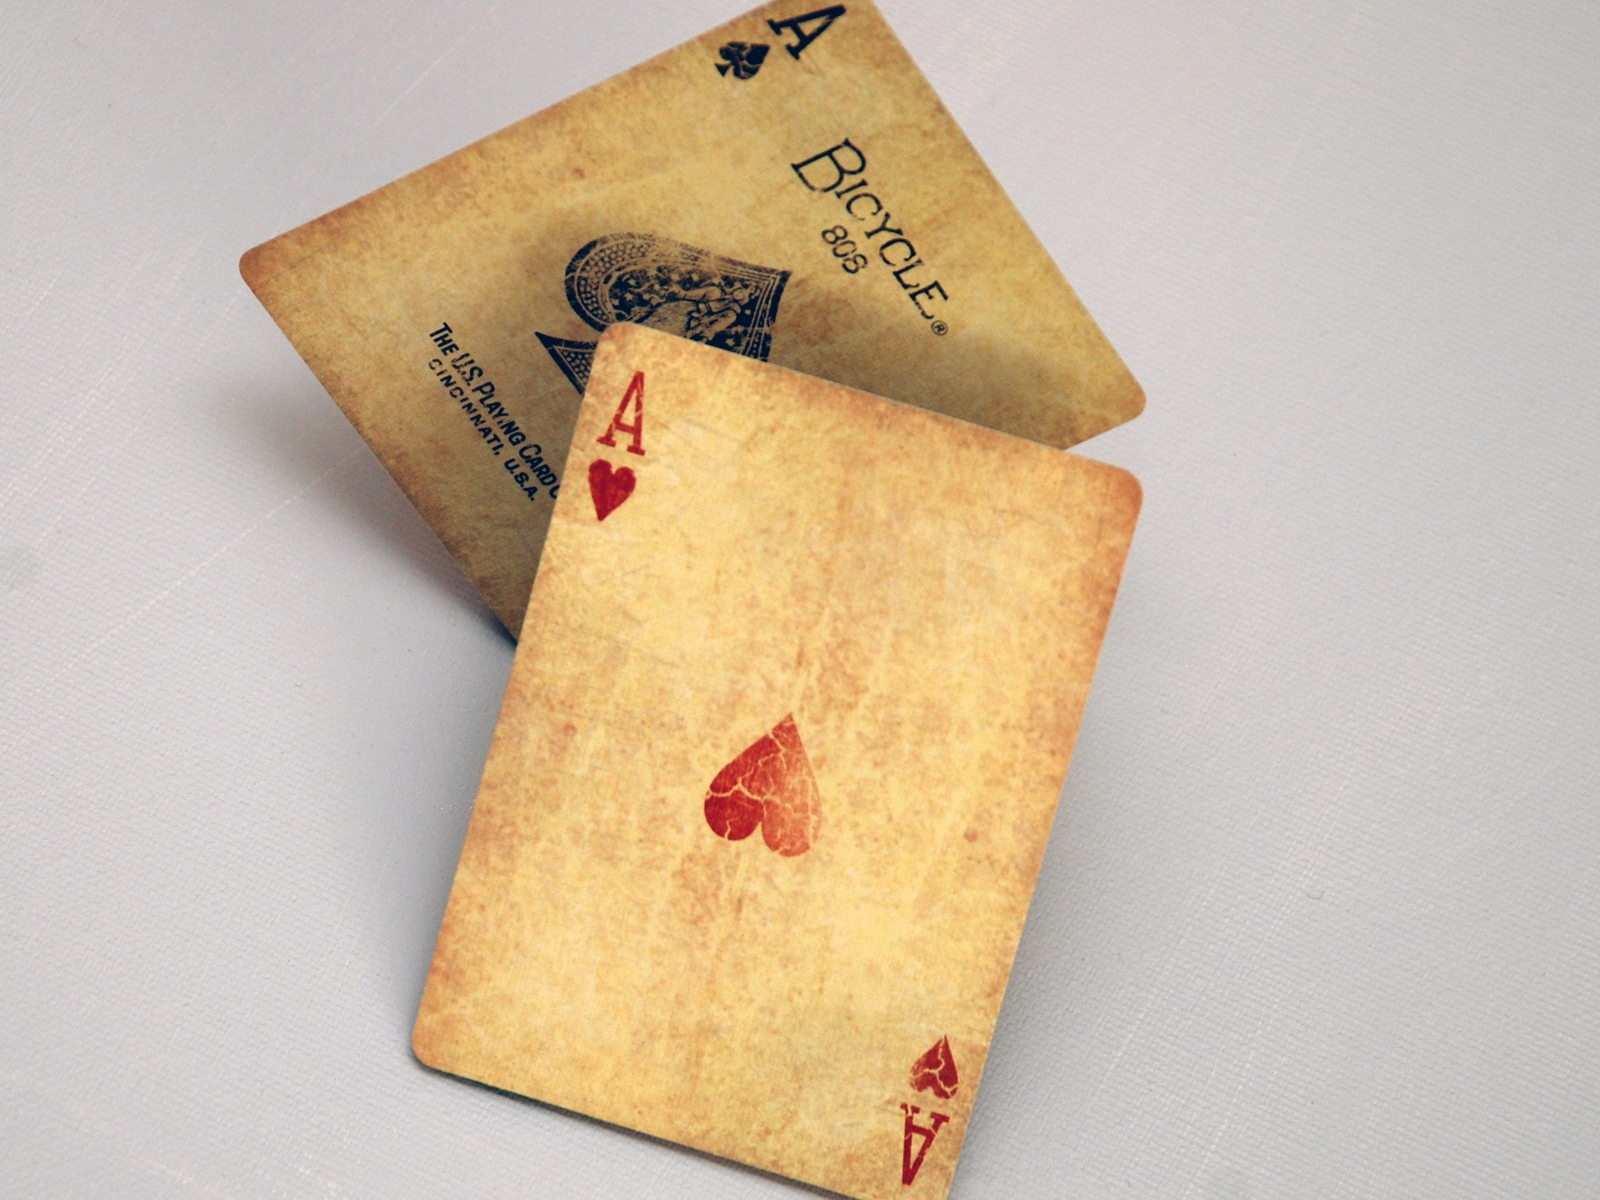 mnemonics techniques to win at playing cards